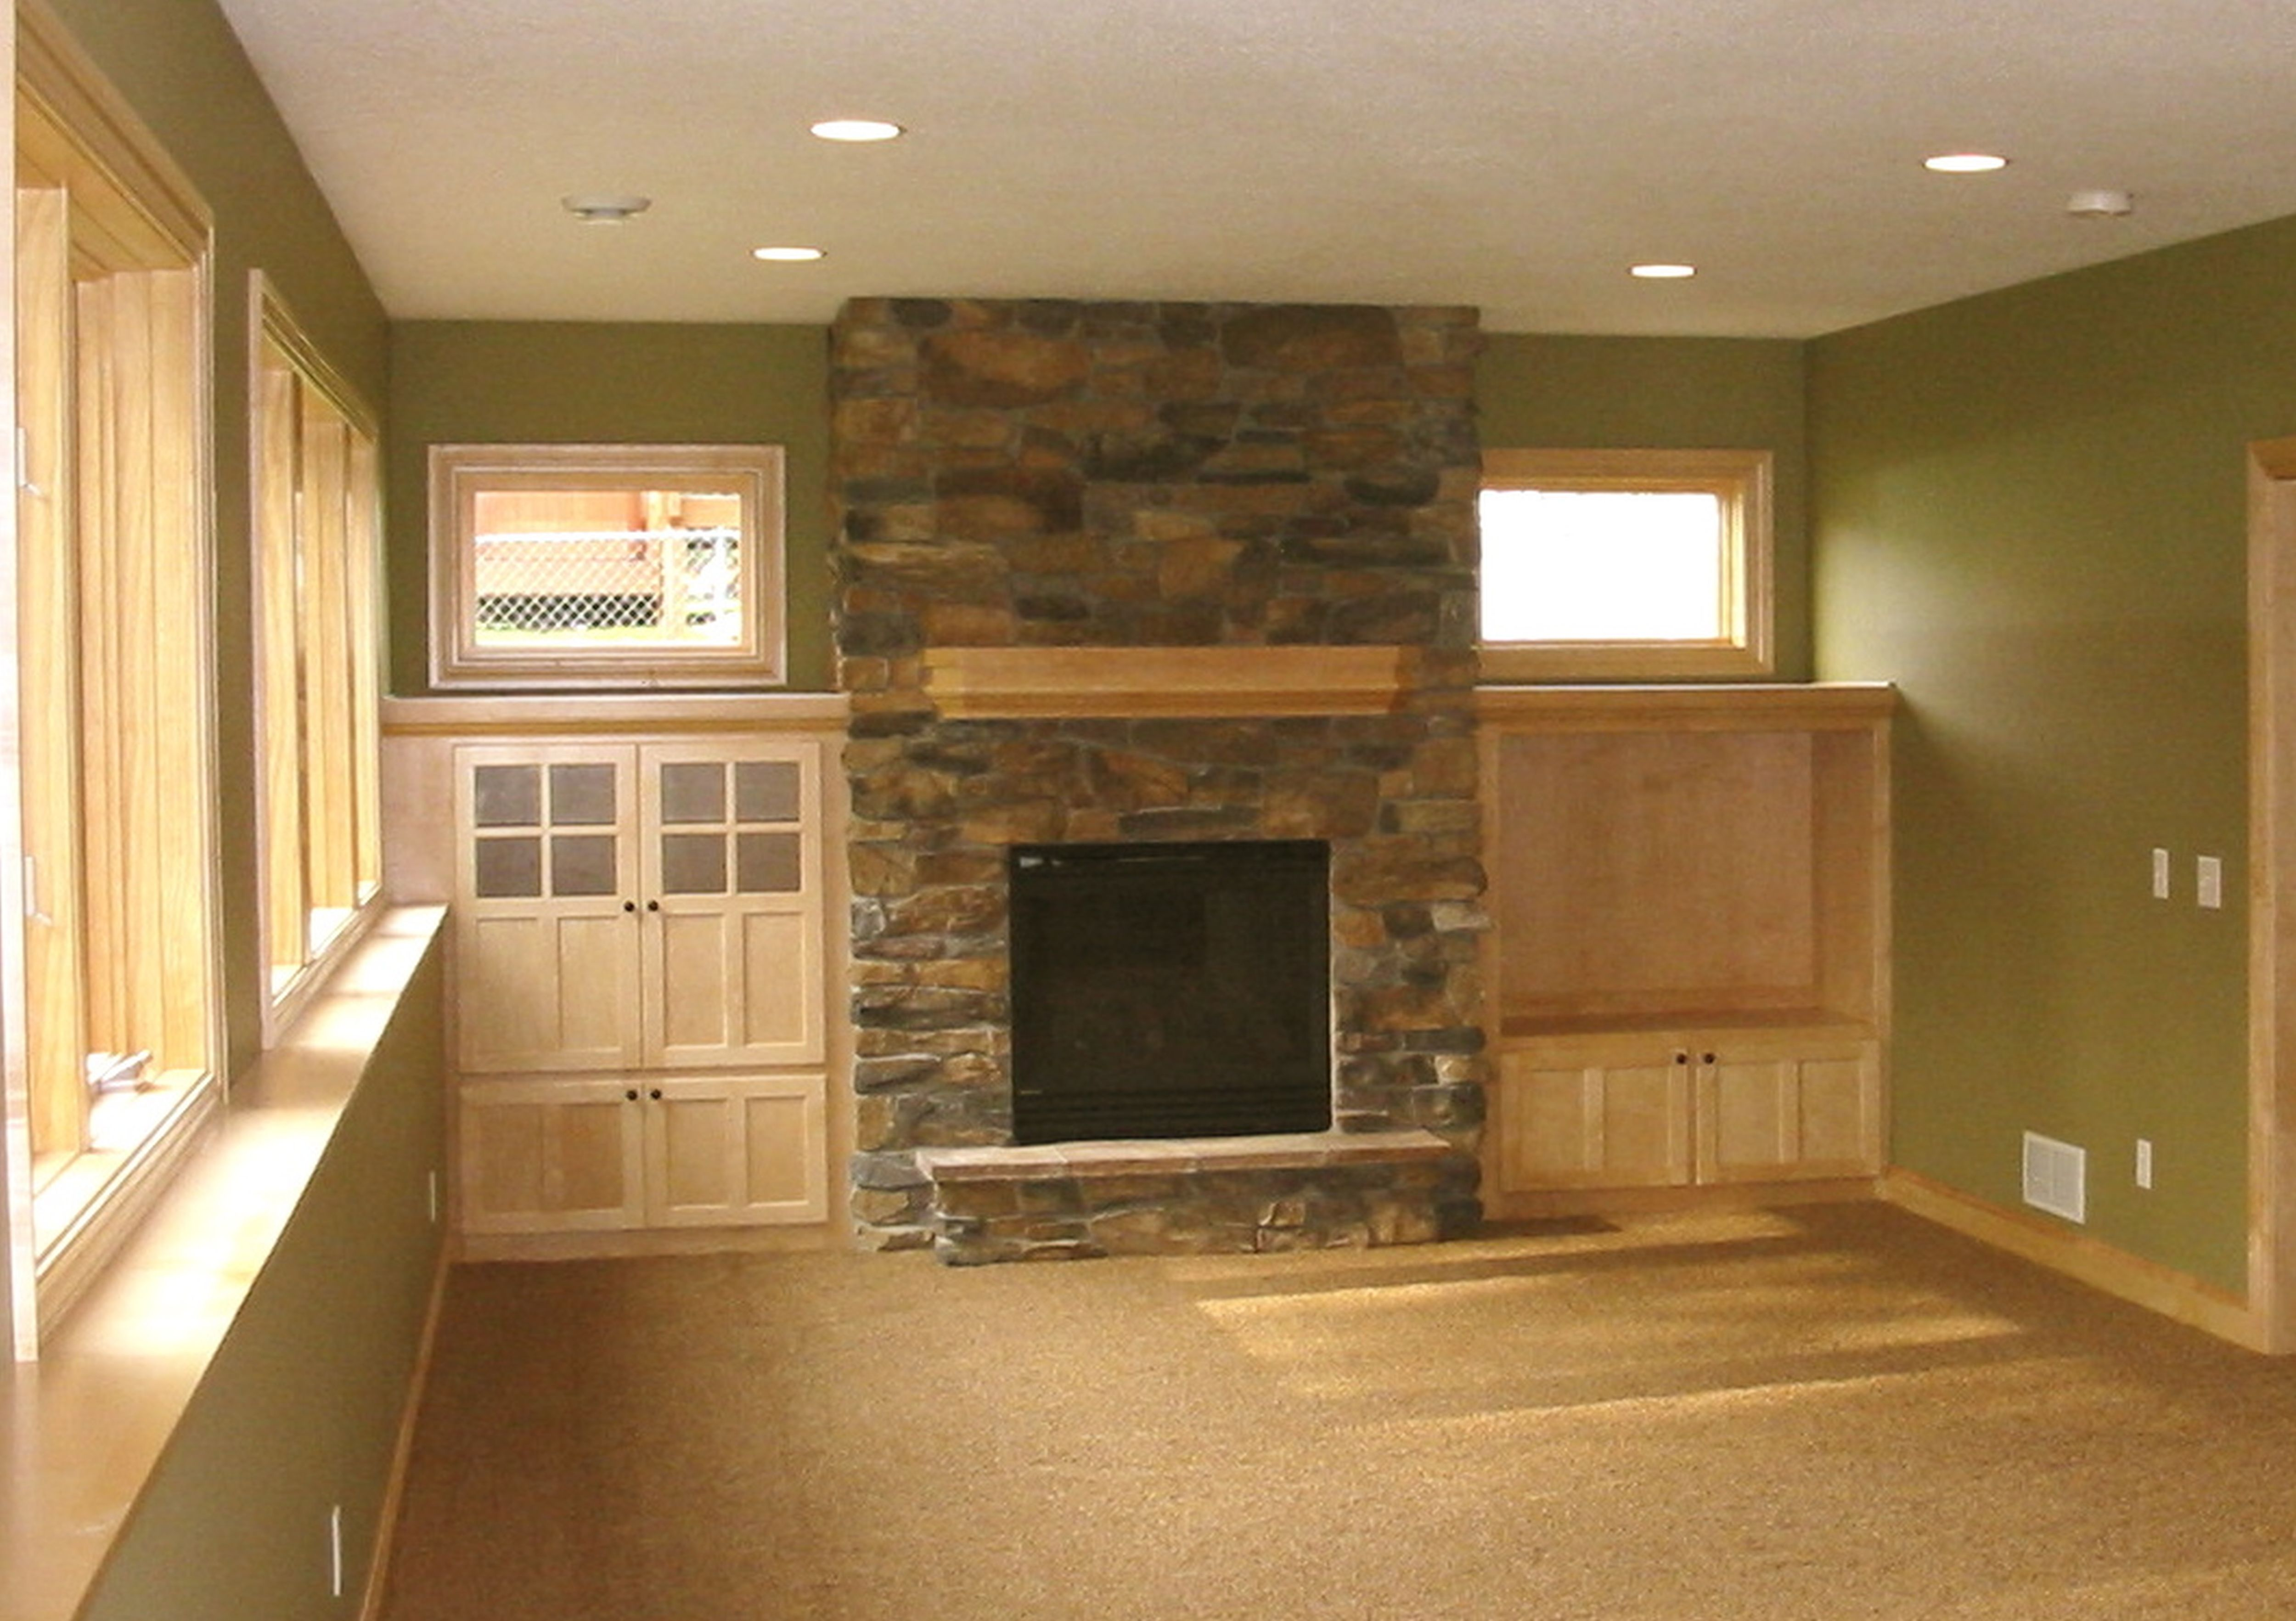 Finest-Basement-remodel-ideas-on-a-budget